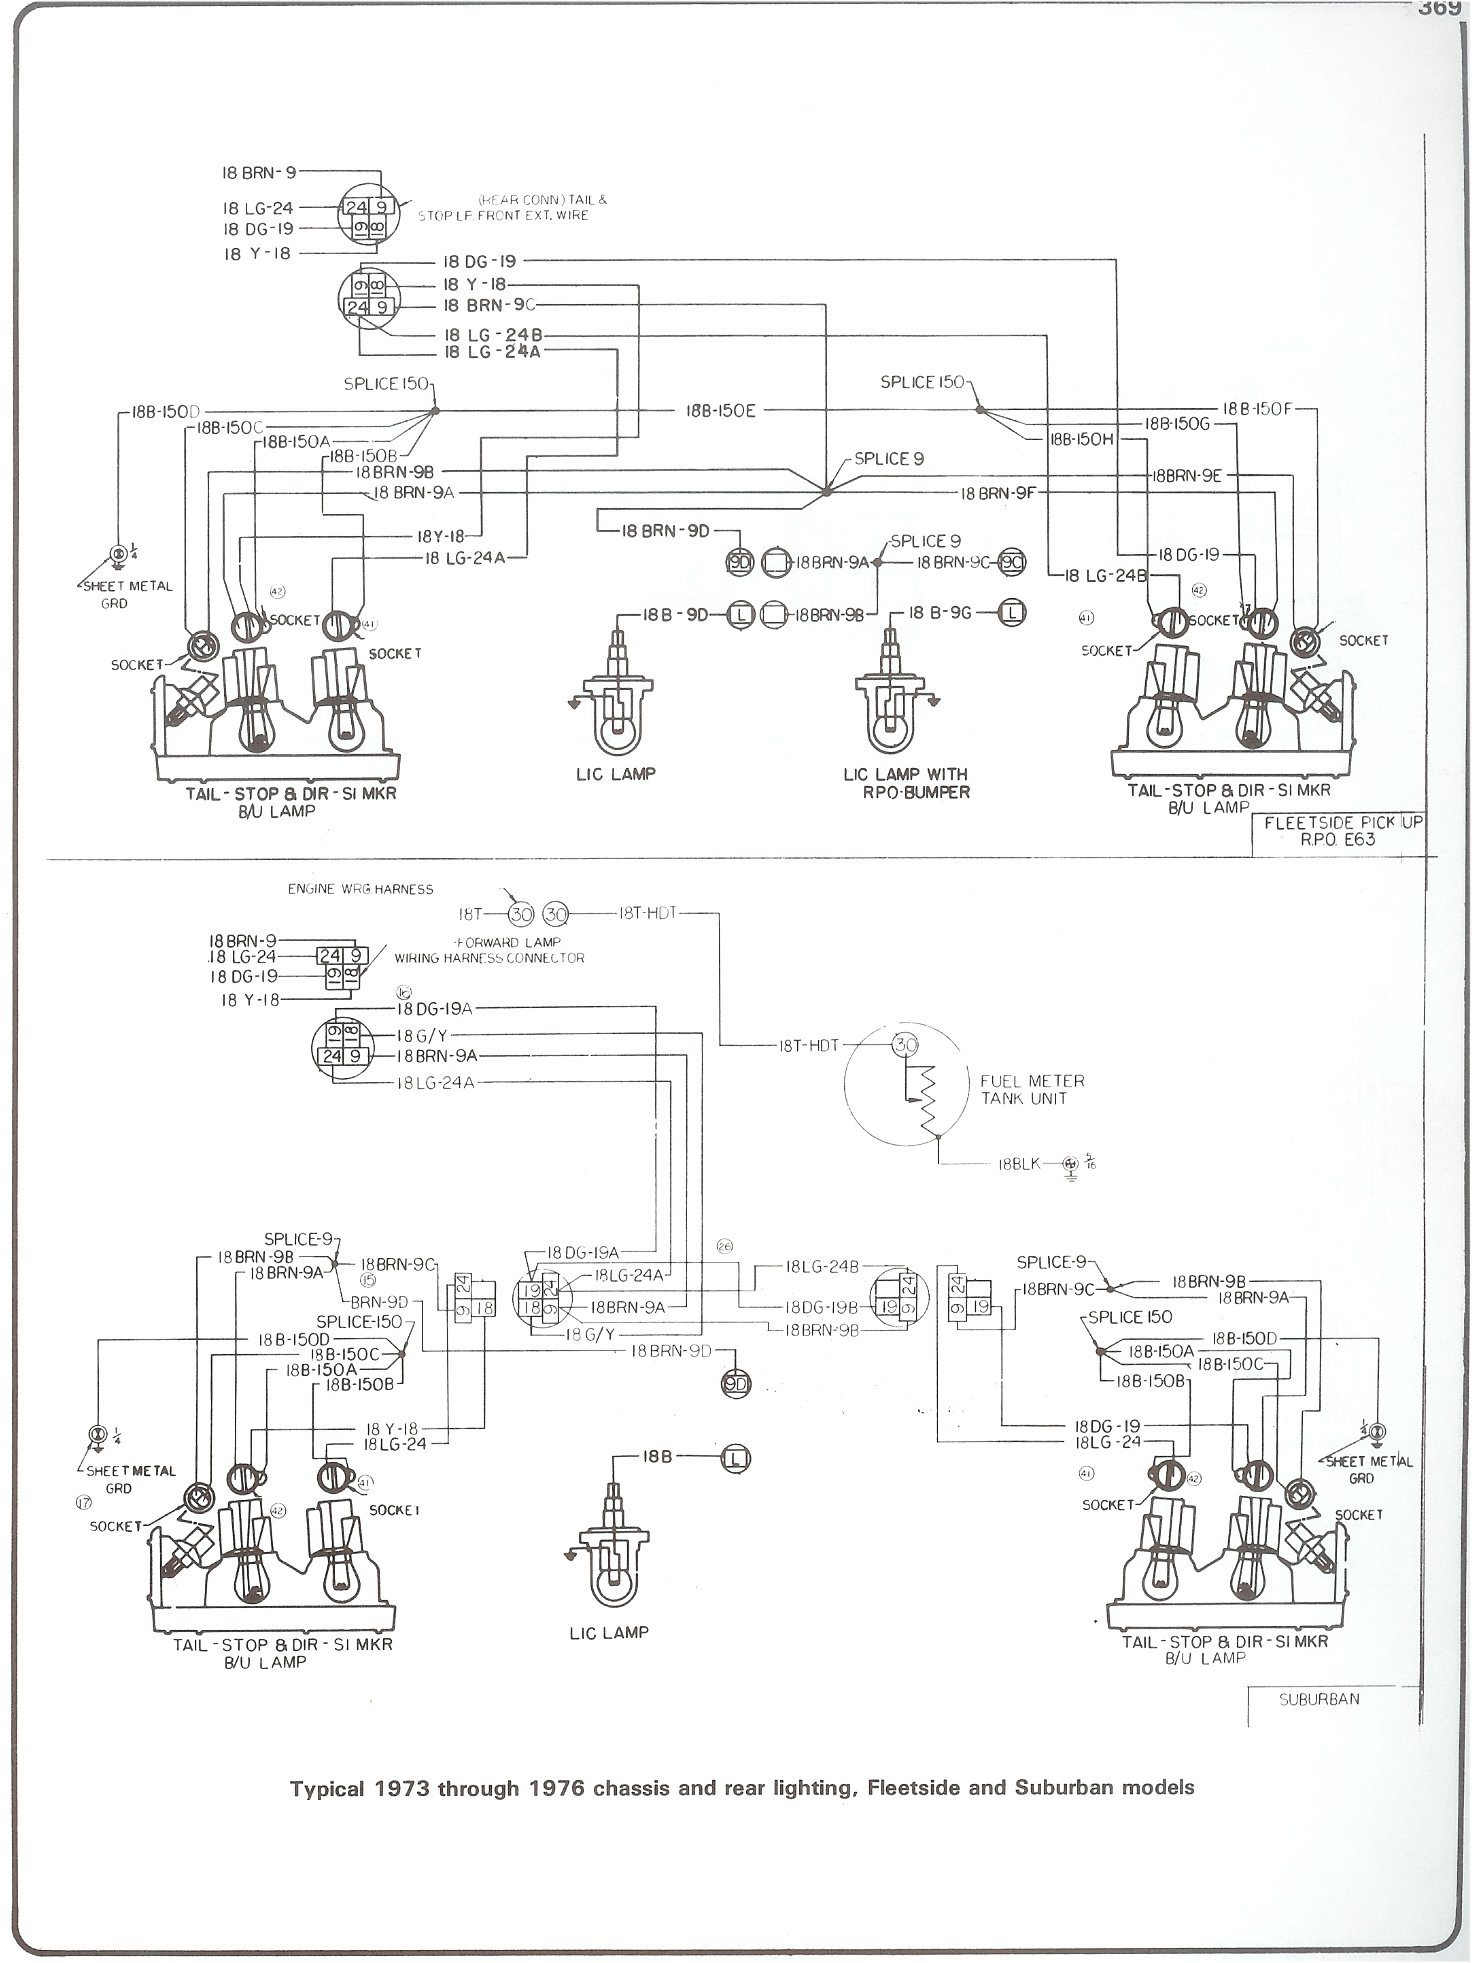 87 Chevy Pickup Wiring Diagram Another Blog About Pontiac Montana Starter Get Free Image Suburban Engine 1987 Silverado Radio